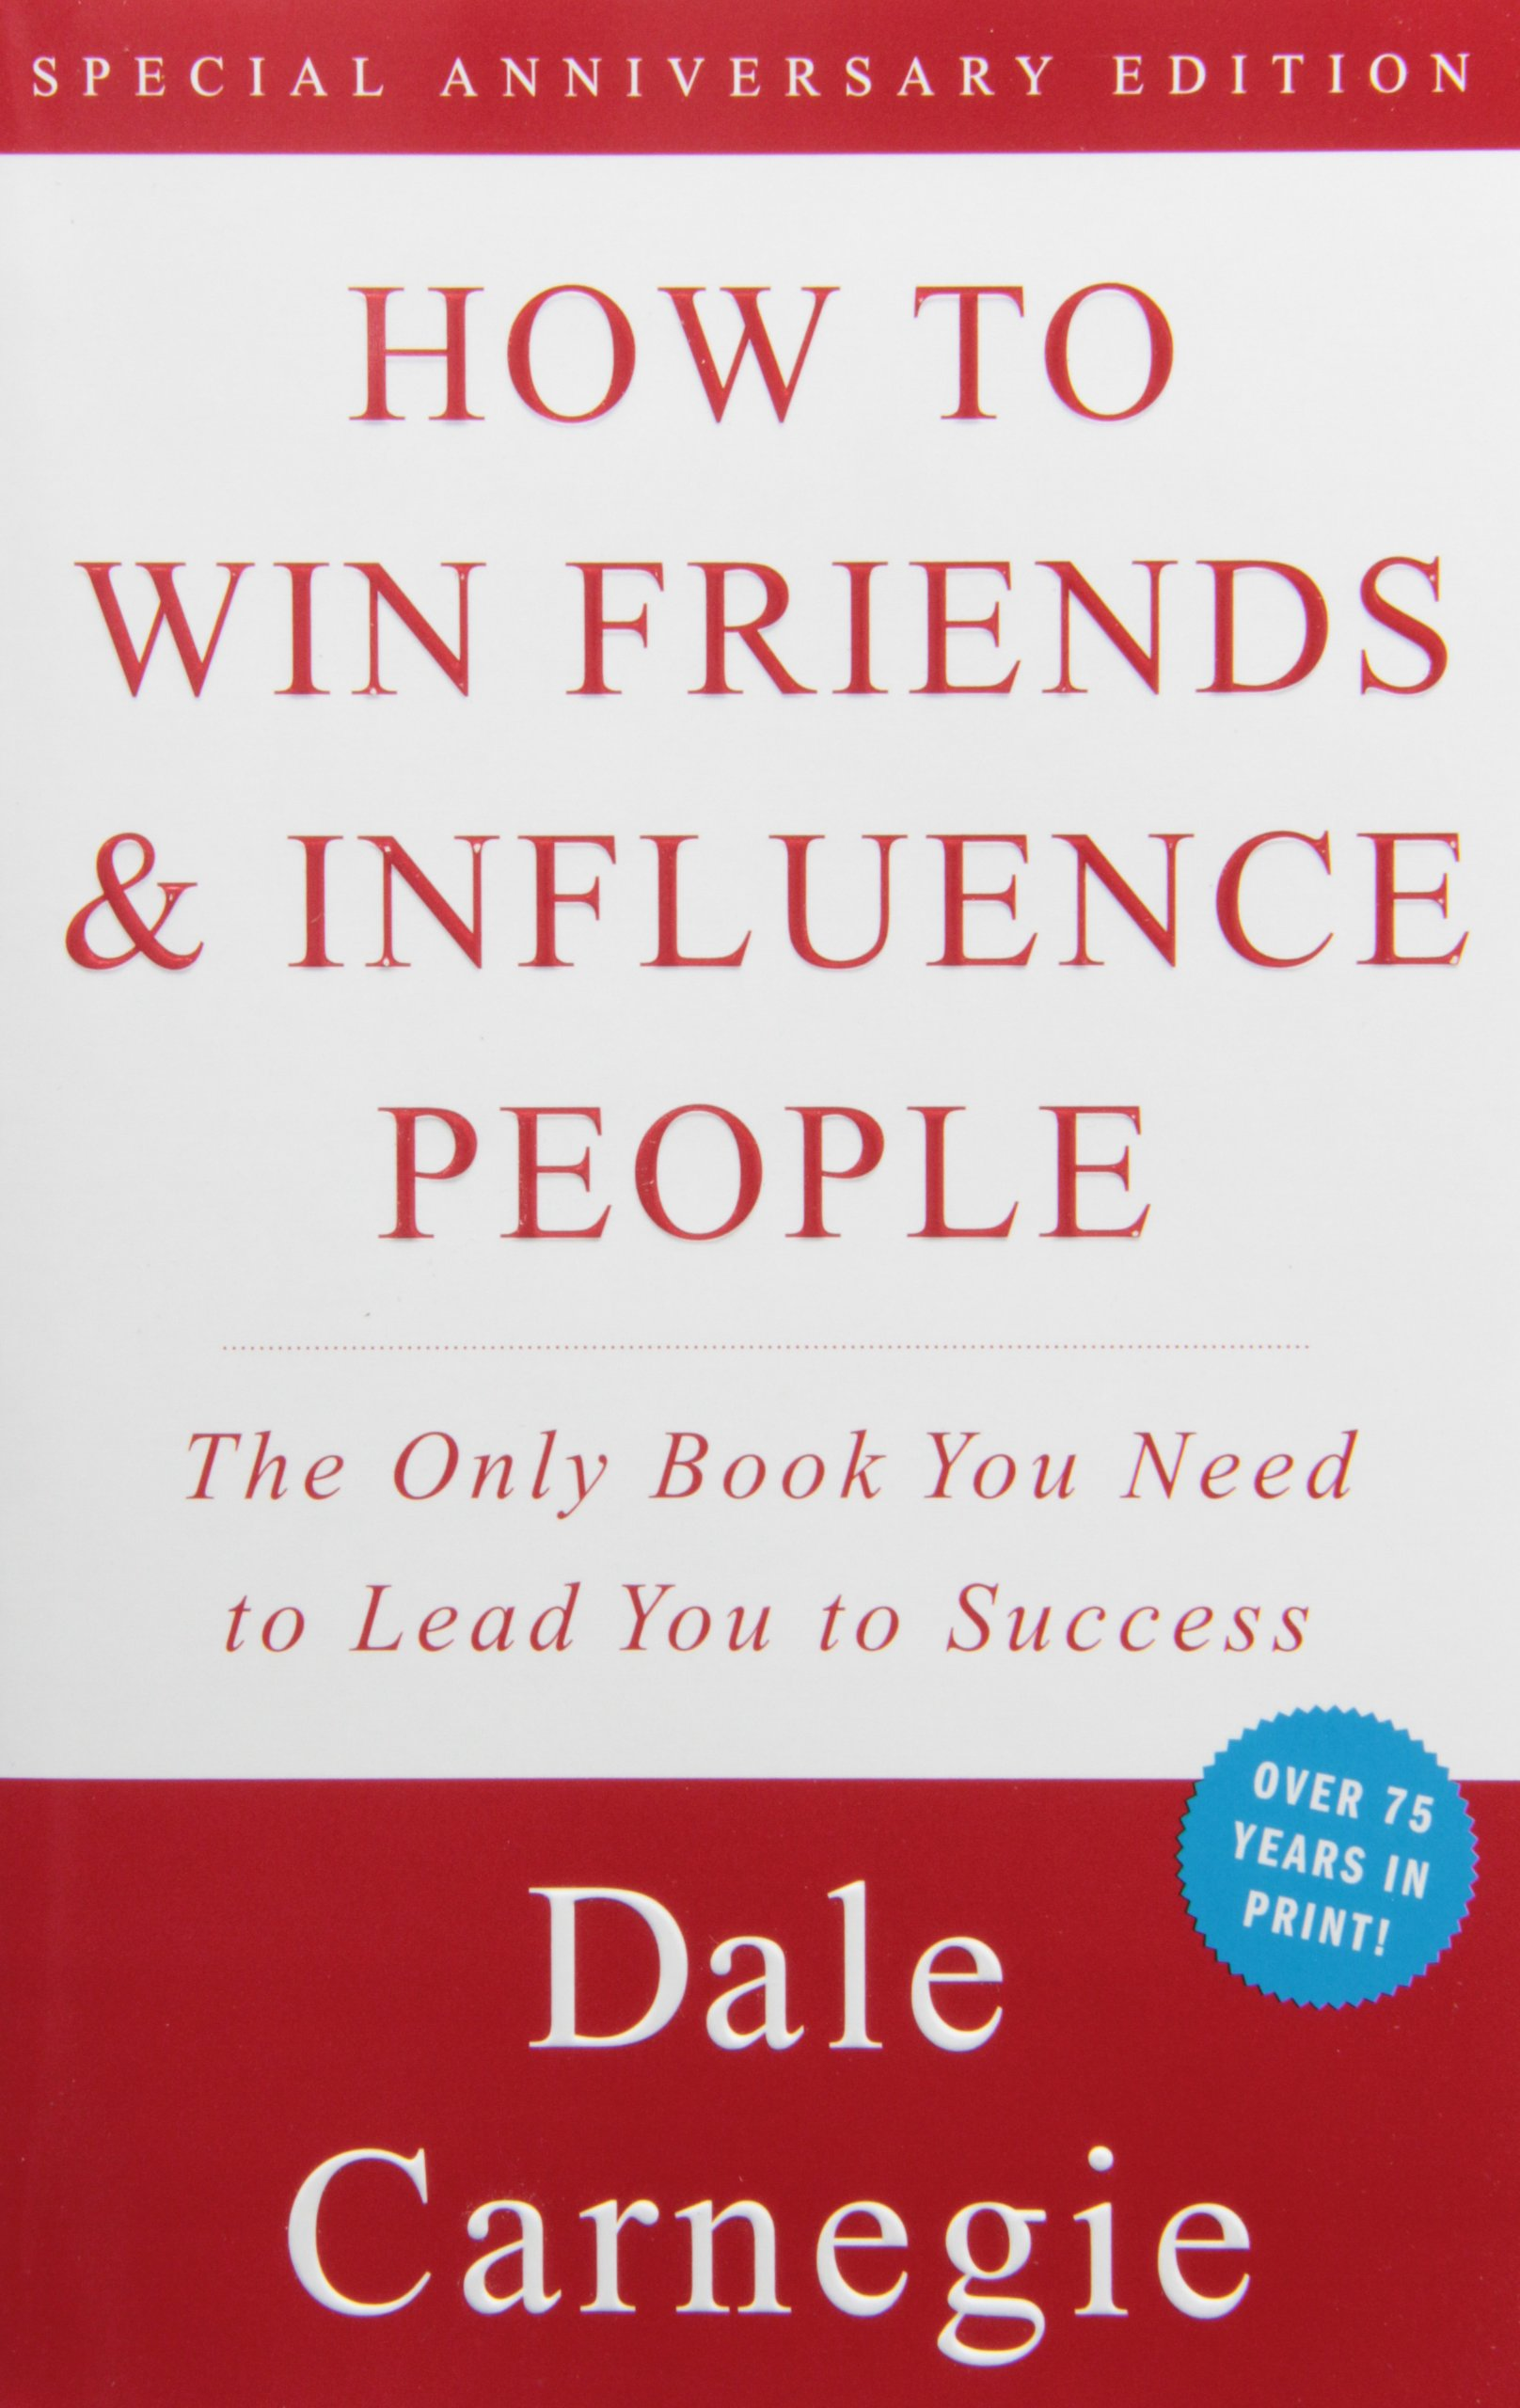 How to influence people 18